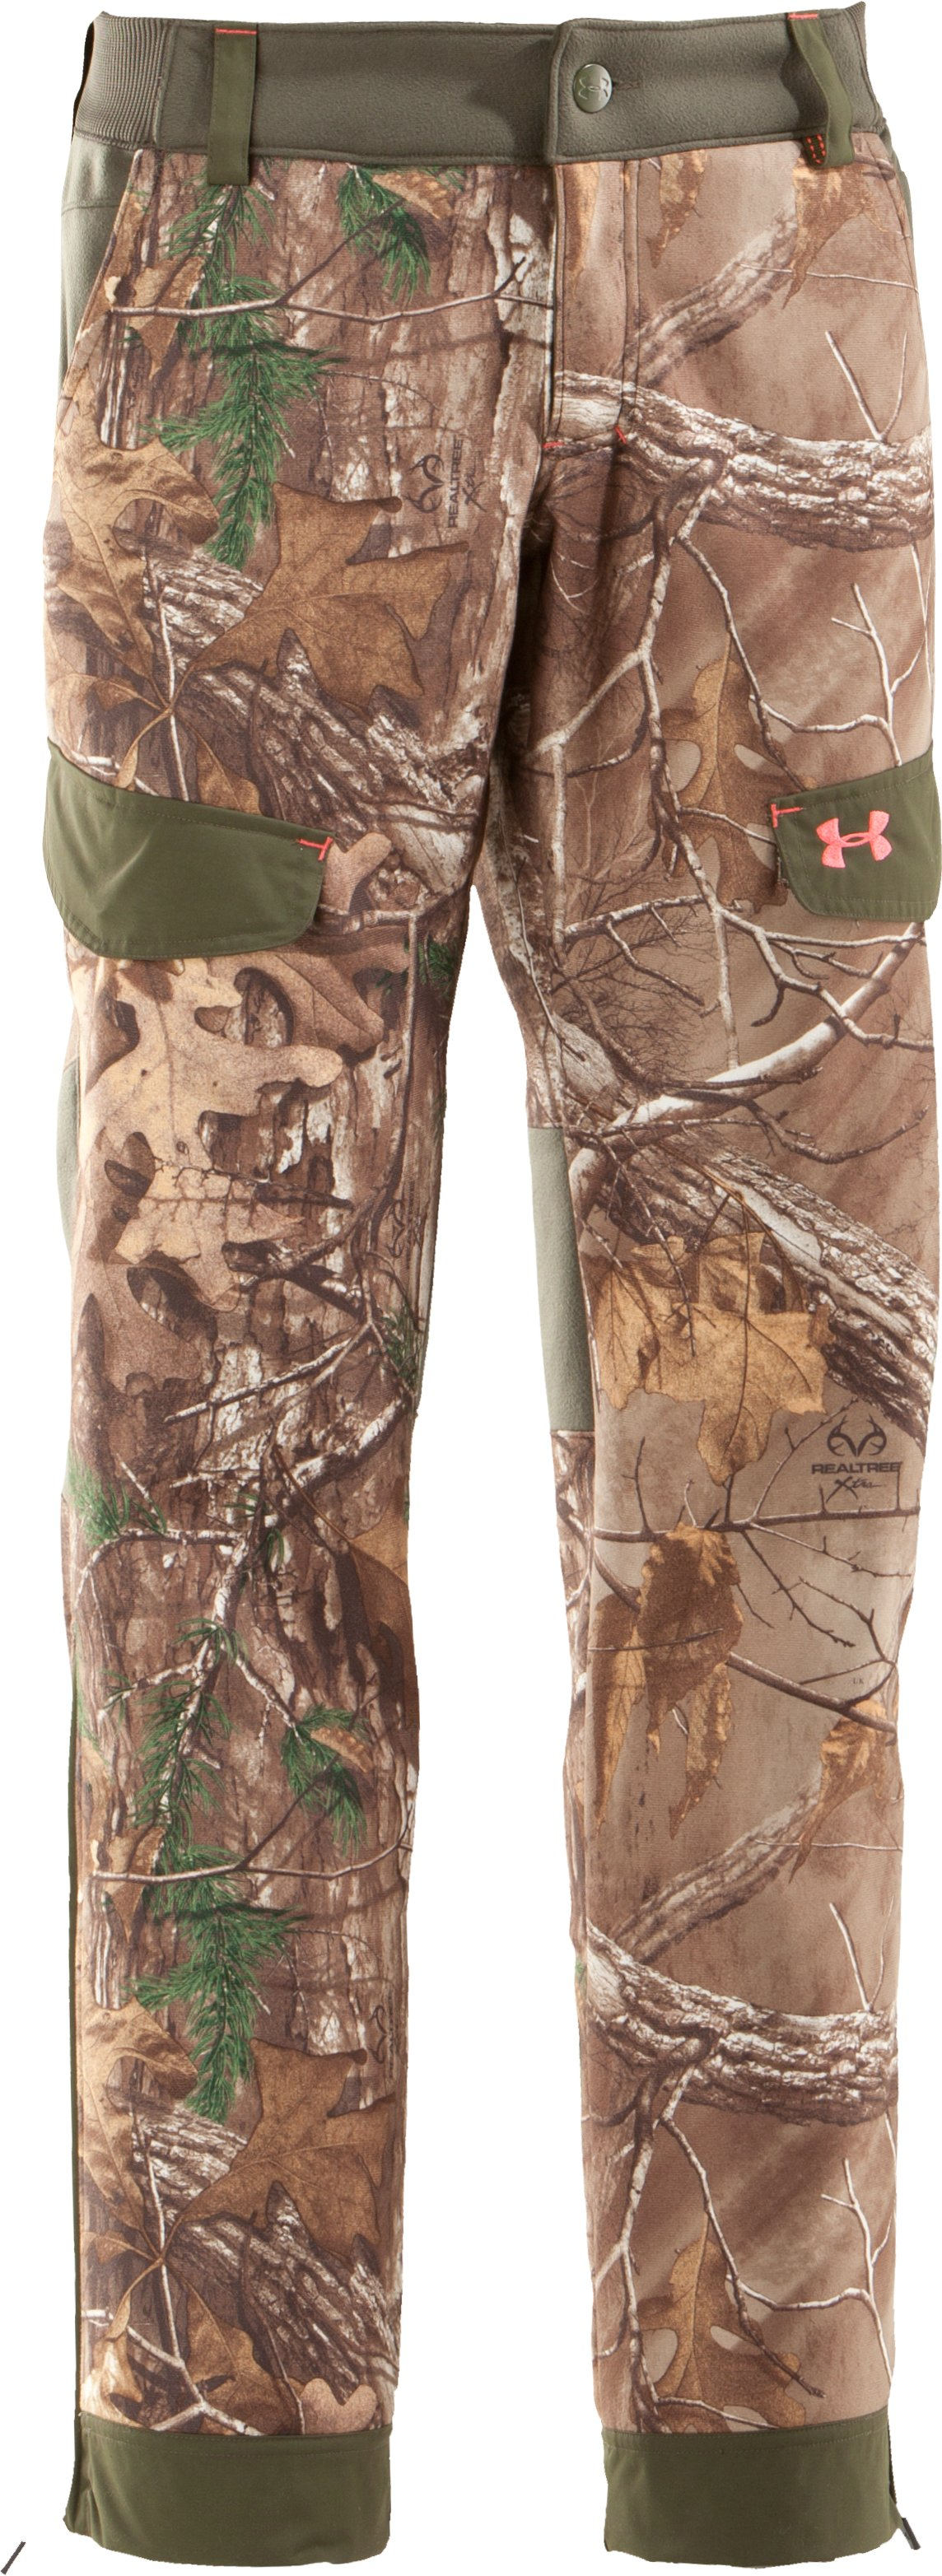 Women's Ayton Fleece Pants, REALTREE AP-XTRA, undefined